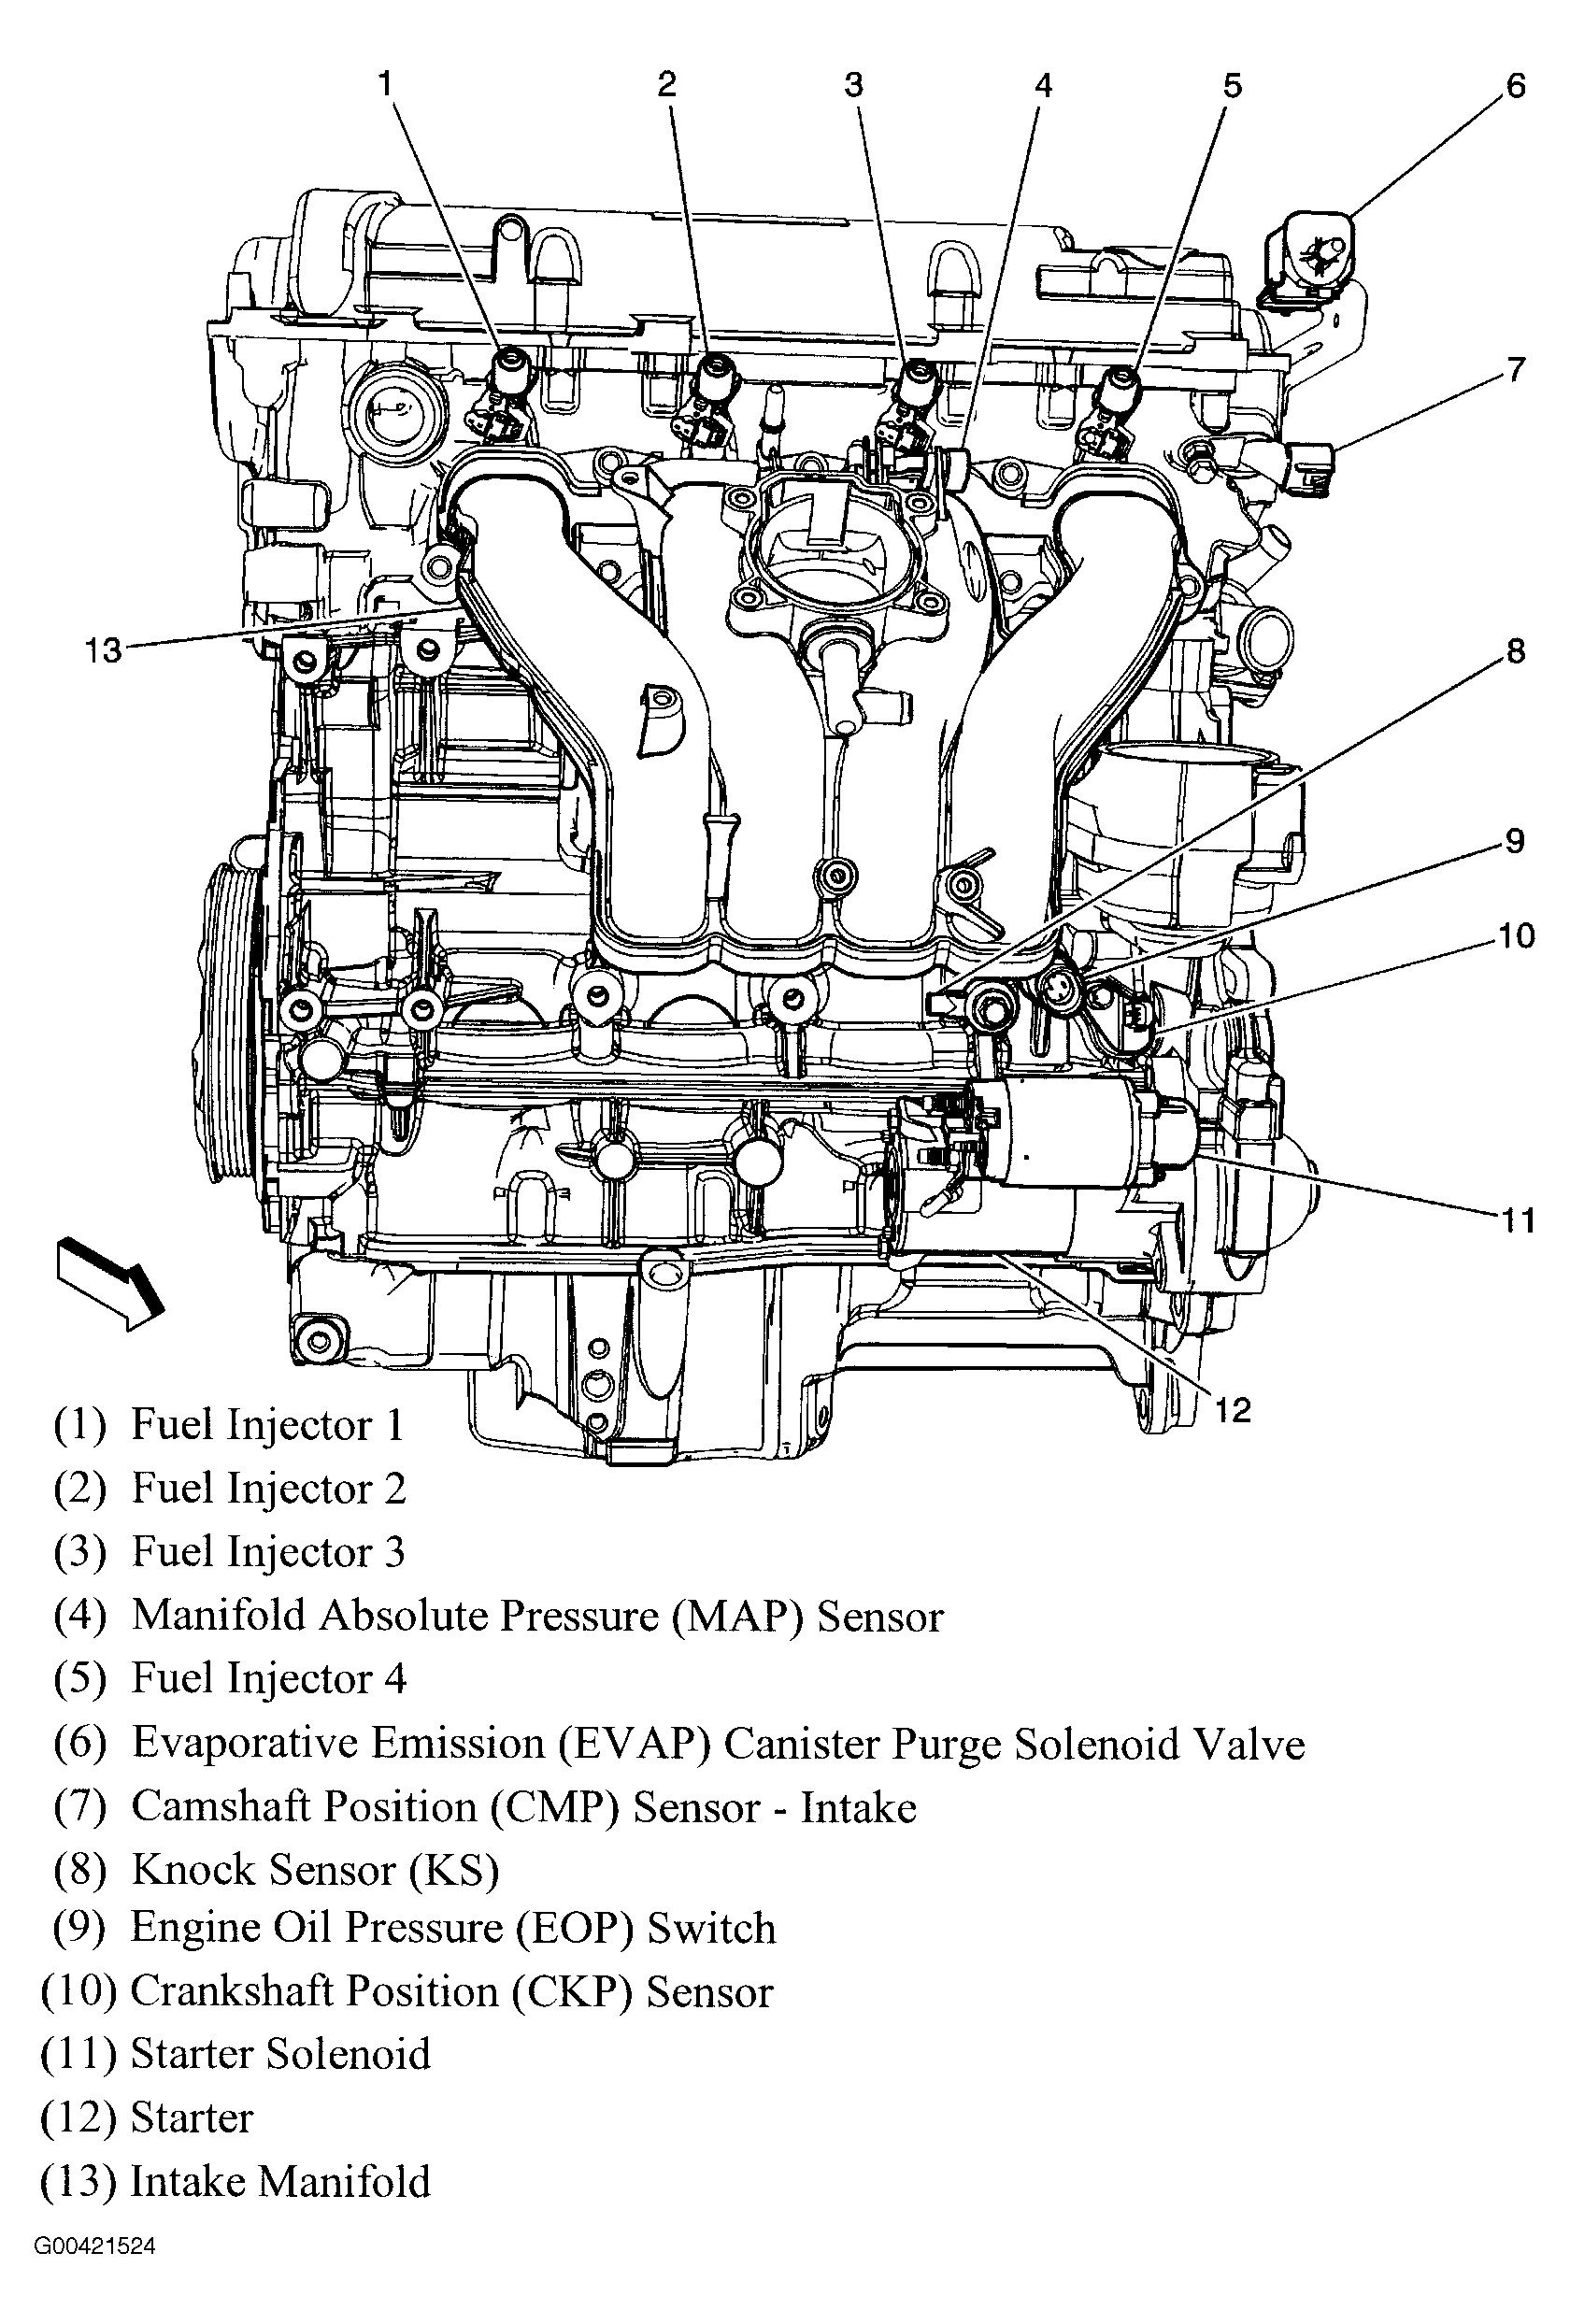 Original on 2011 Chevy Malibu 4 Cylinder Engine